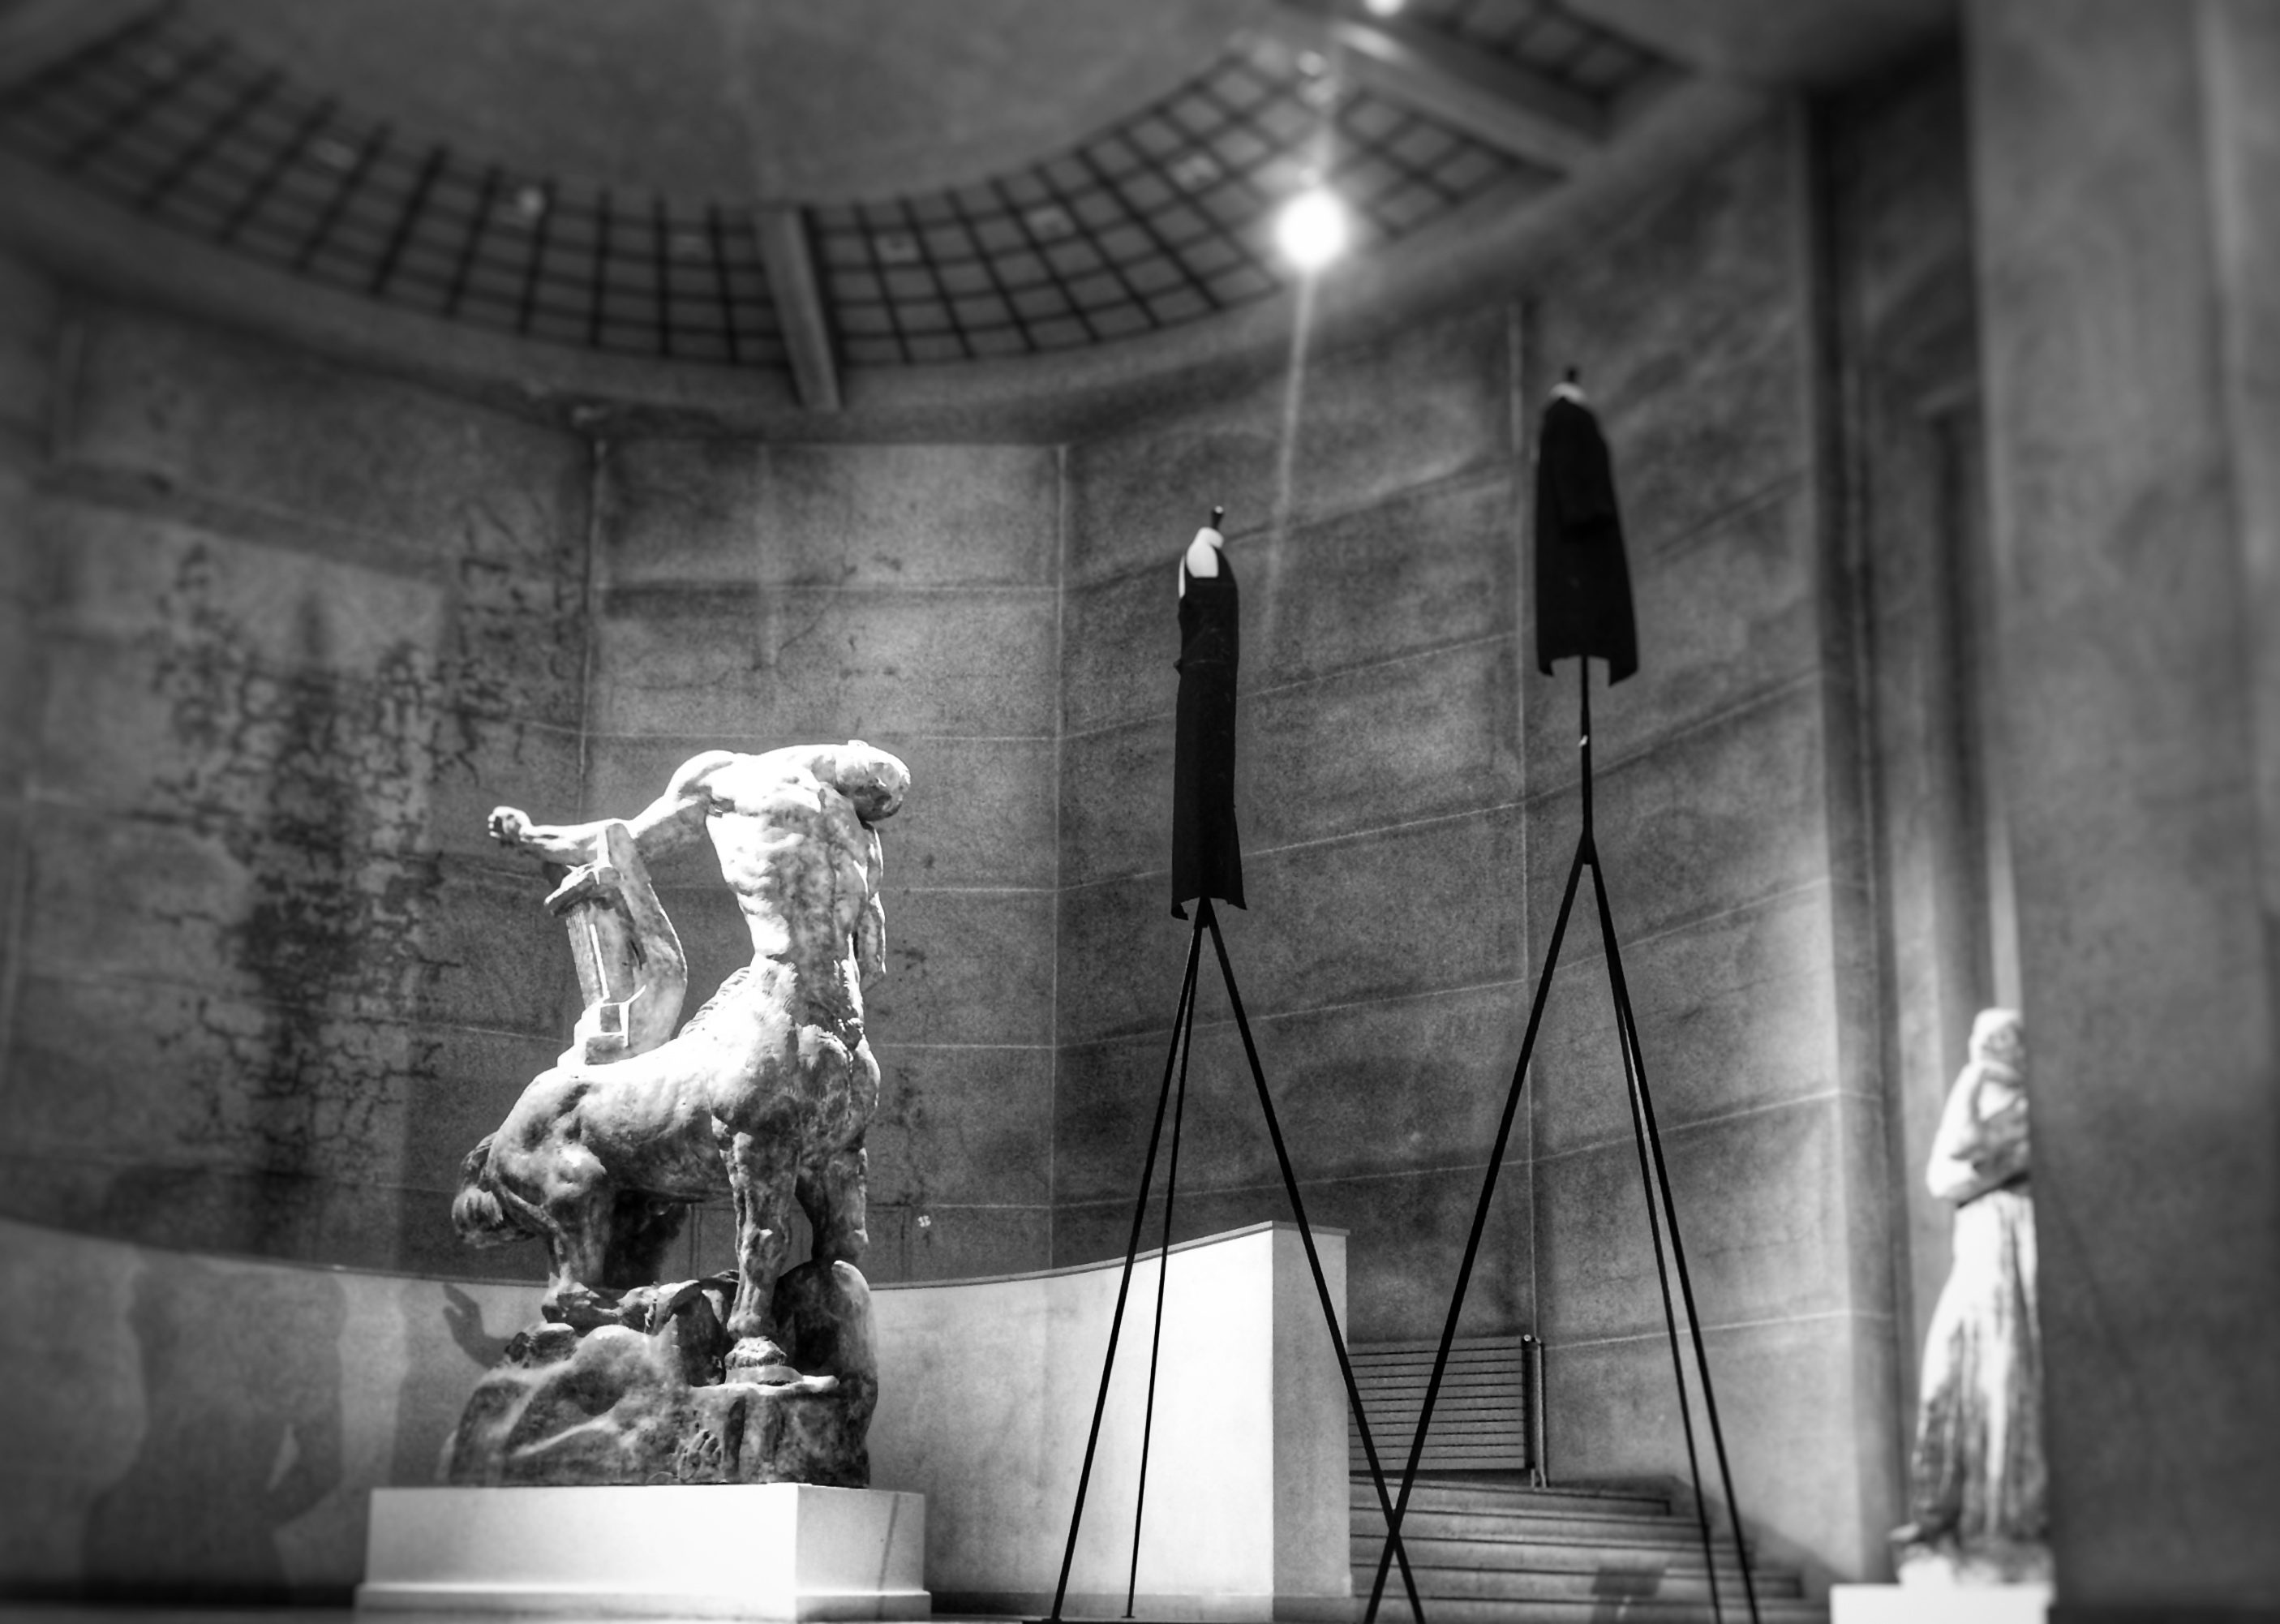 A dialog of beauties: Balenciaga, Bourdelle. Photography © Araso